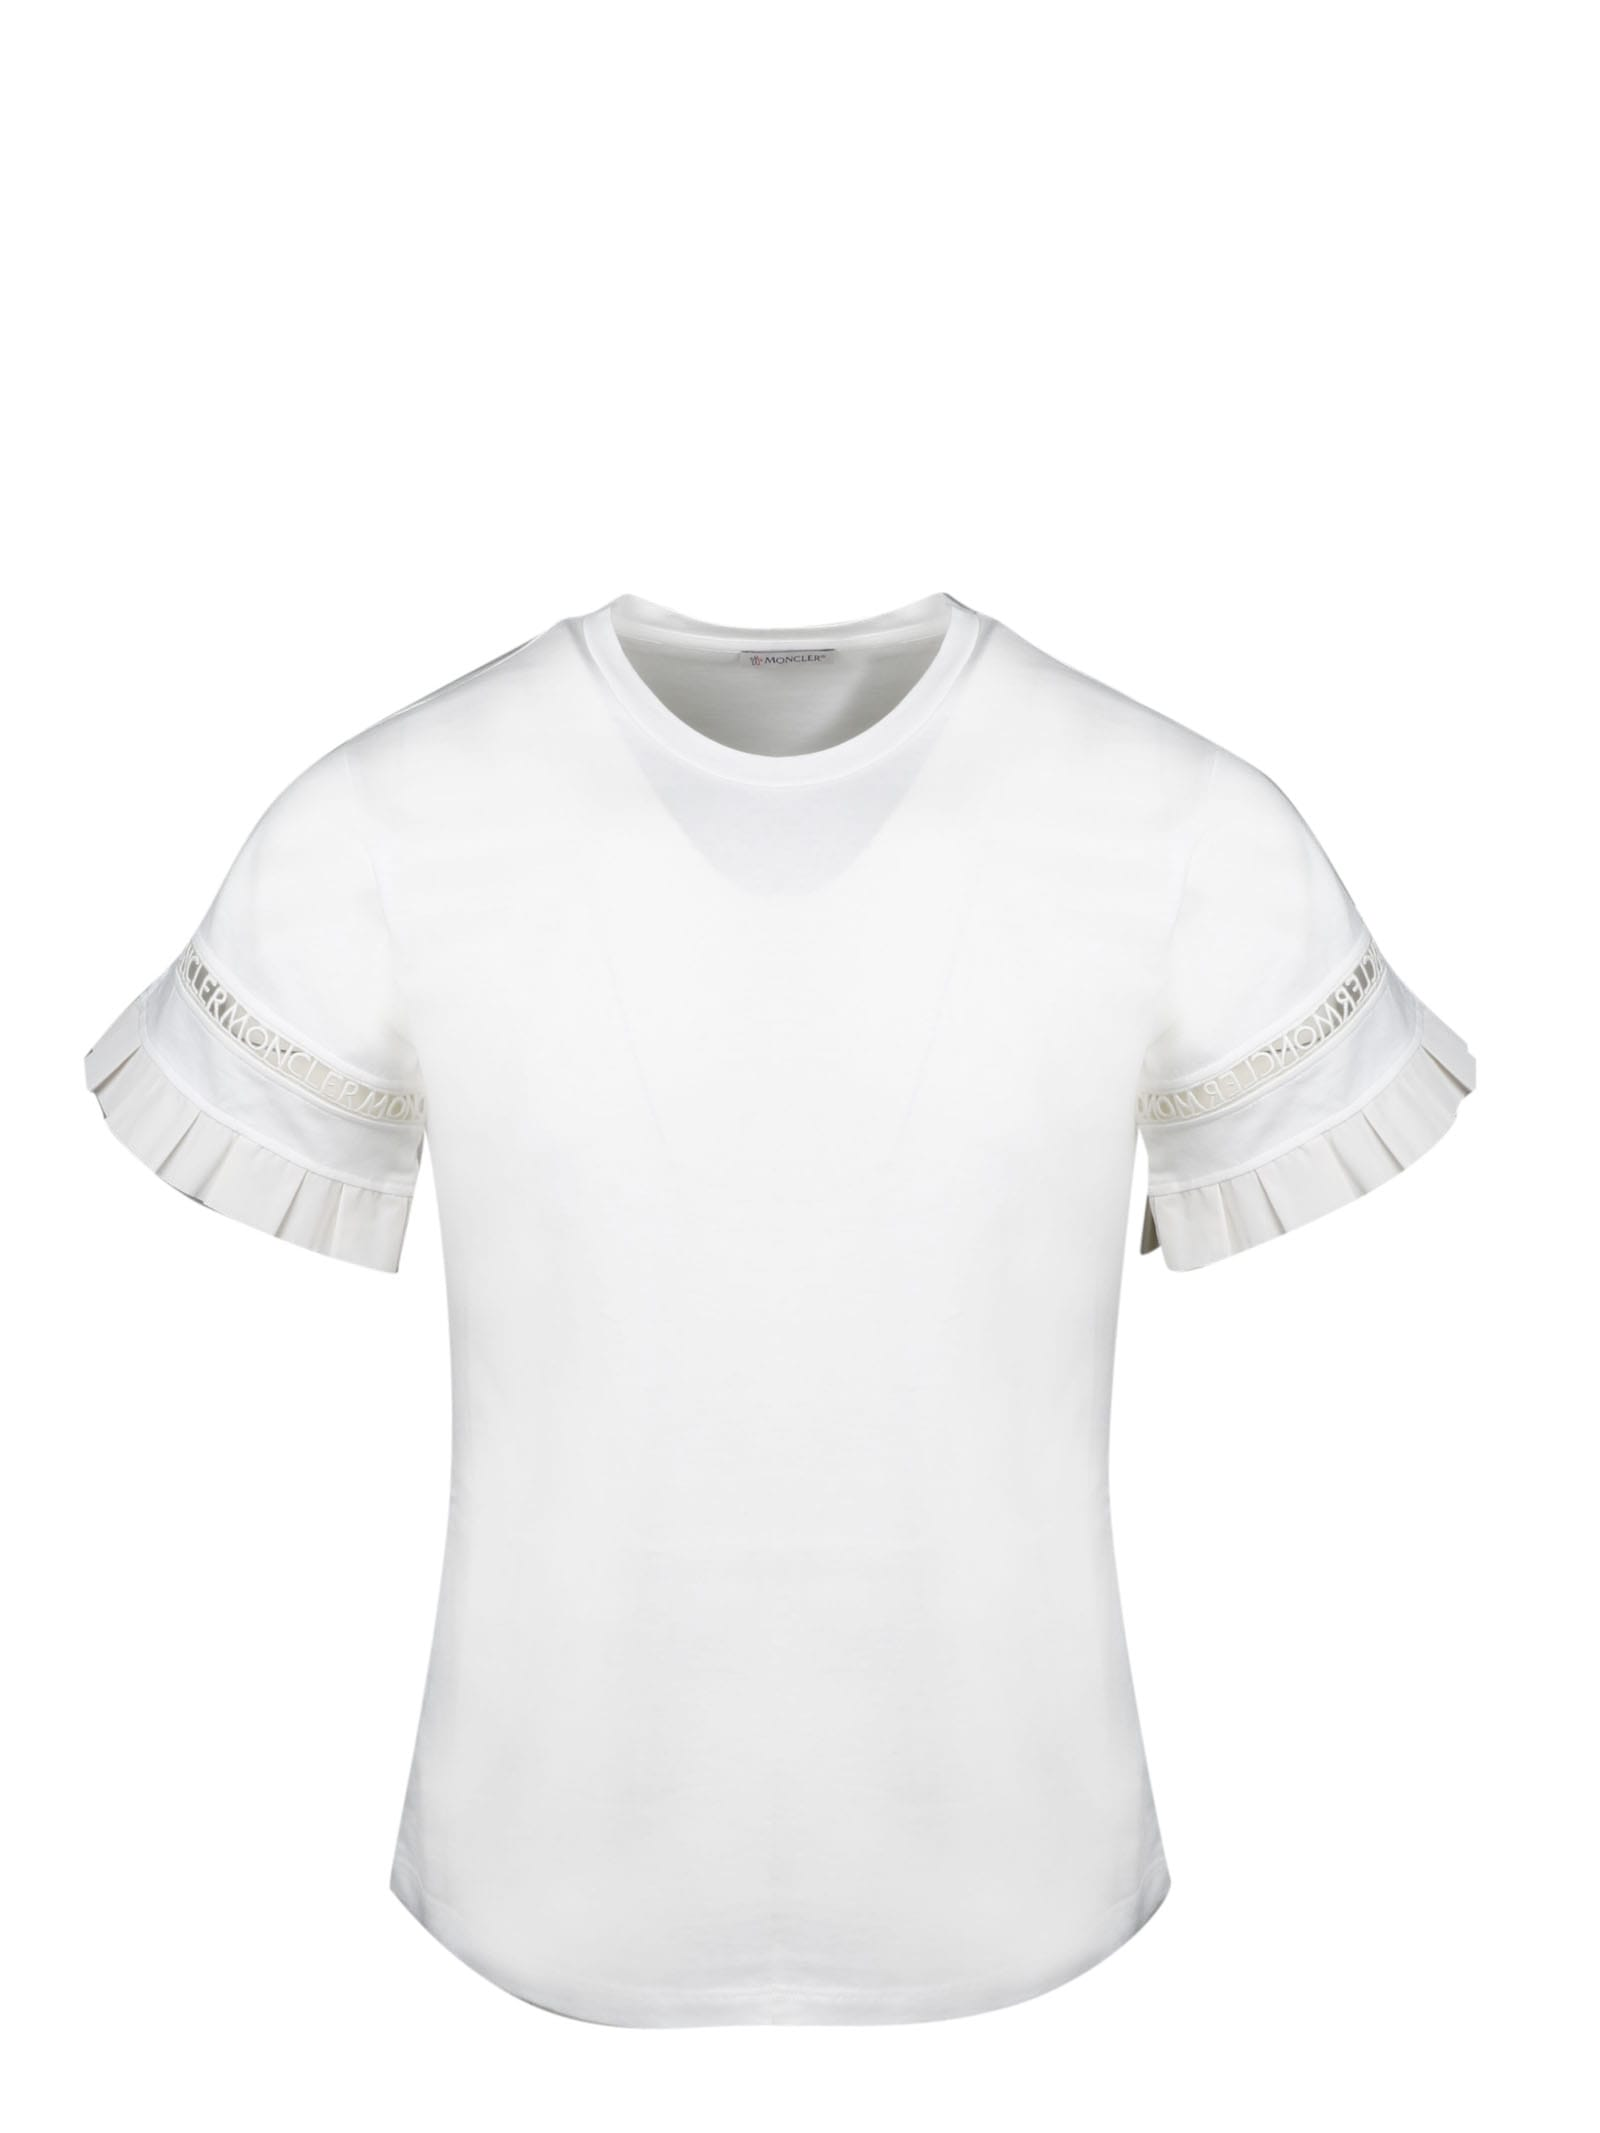 Moncler Short Sleeve T-shirts